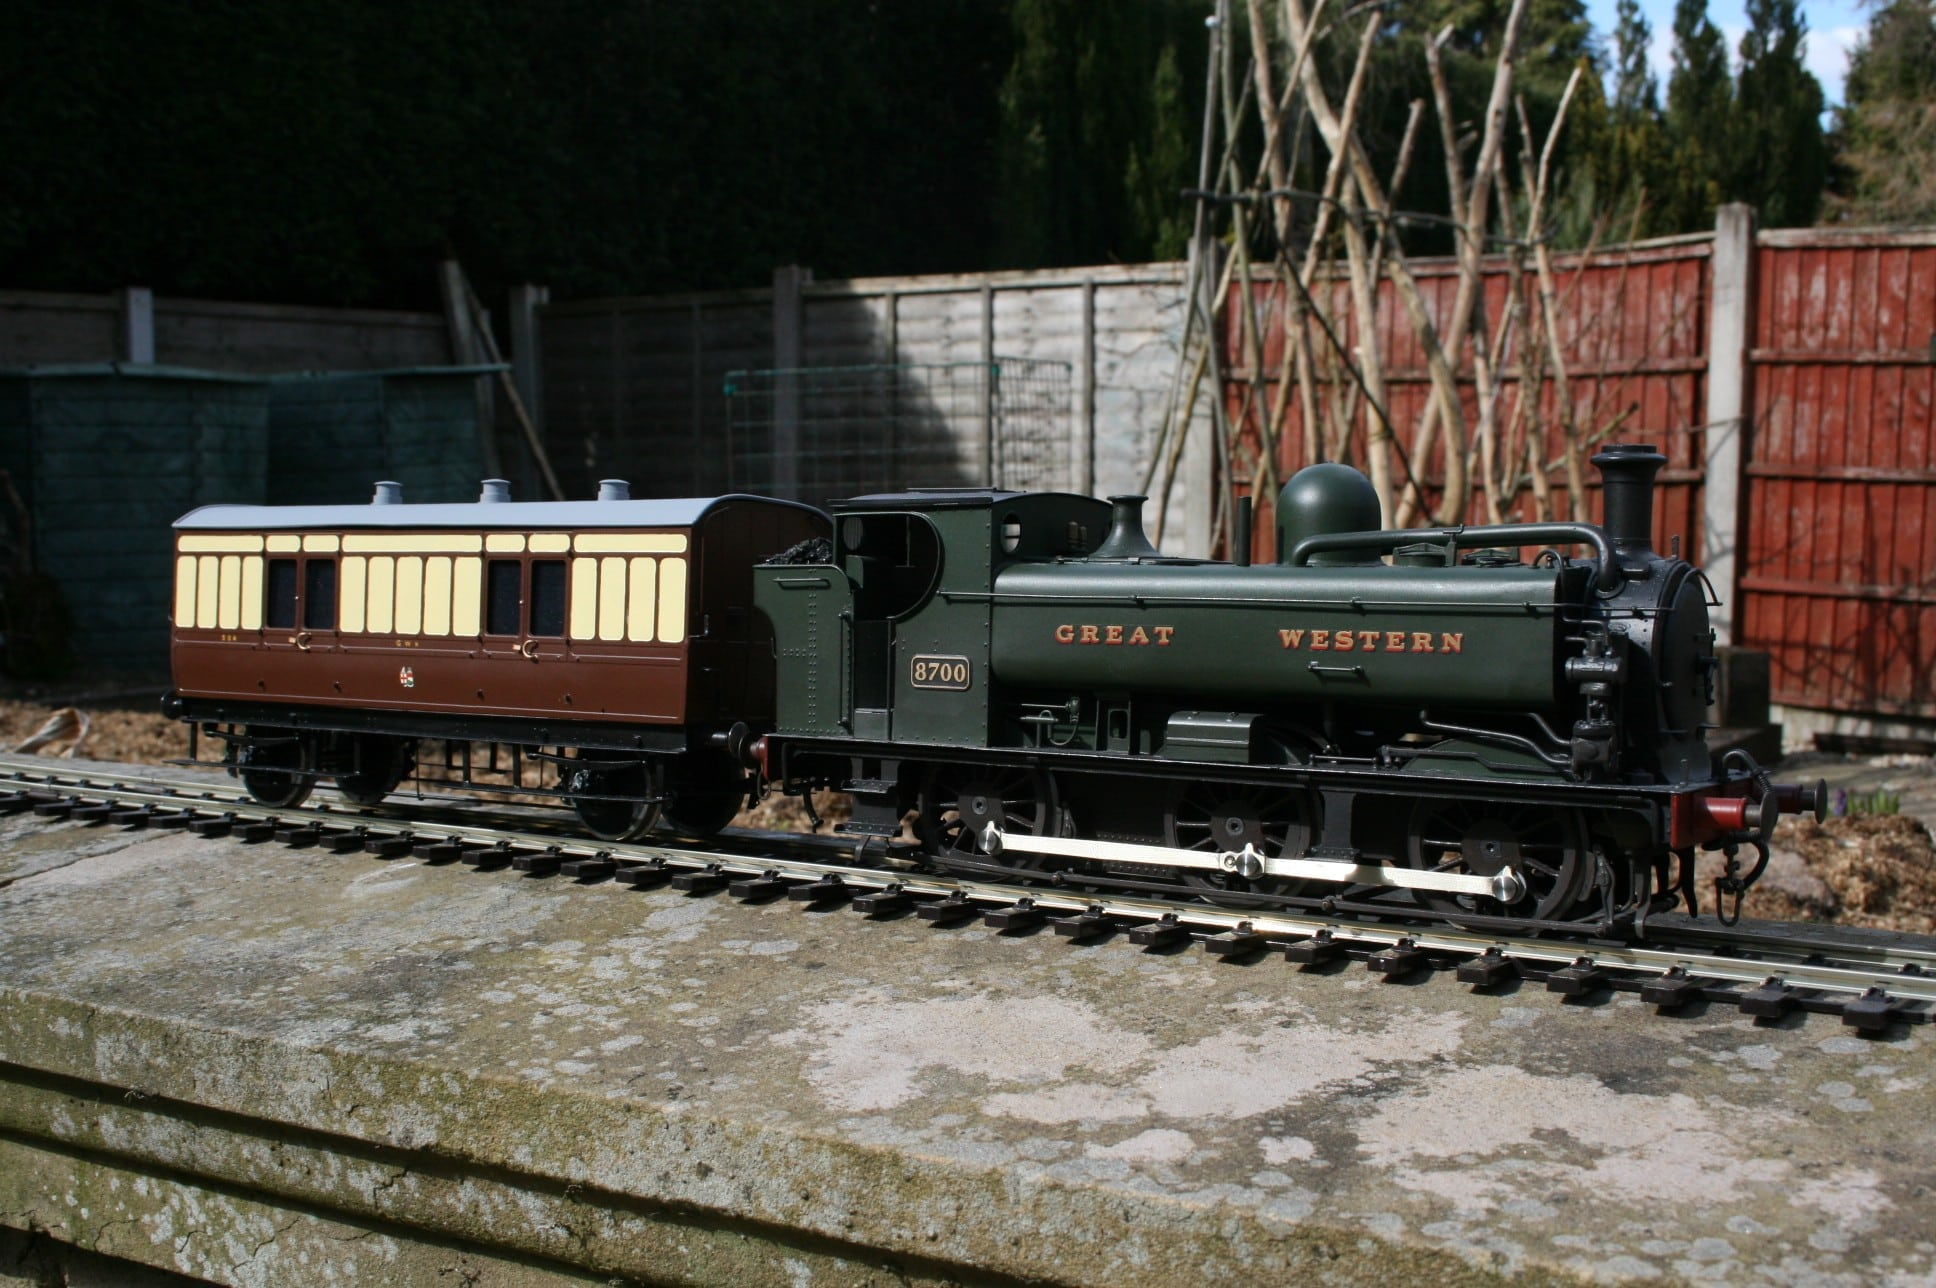 GWR 87xx 0-6-0PT engine number 8700 in original condition